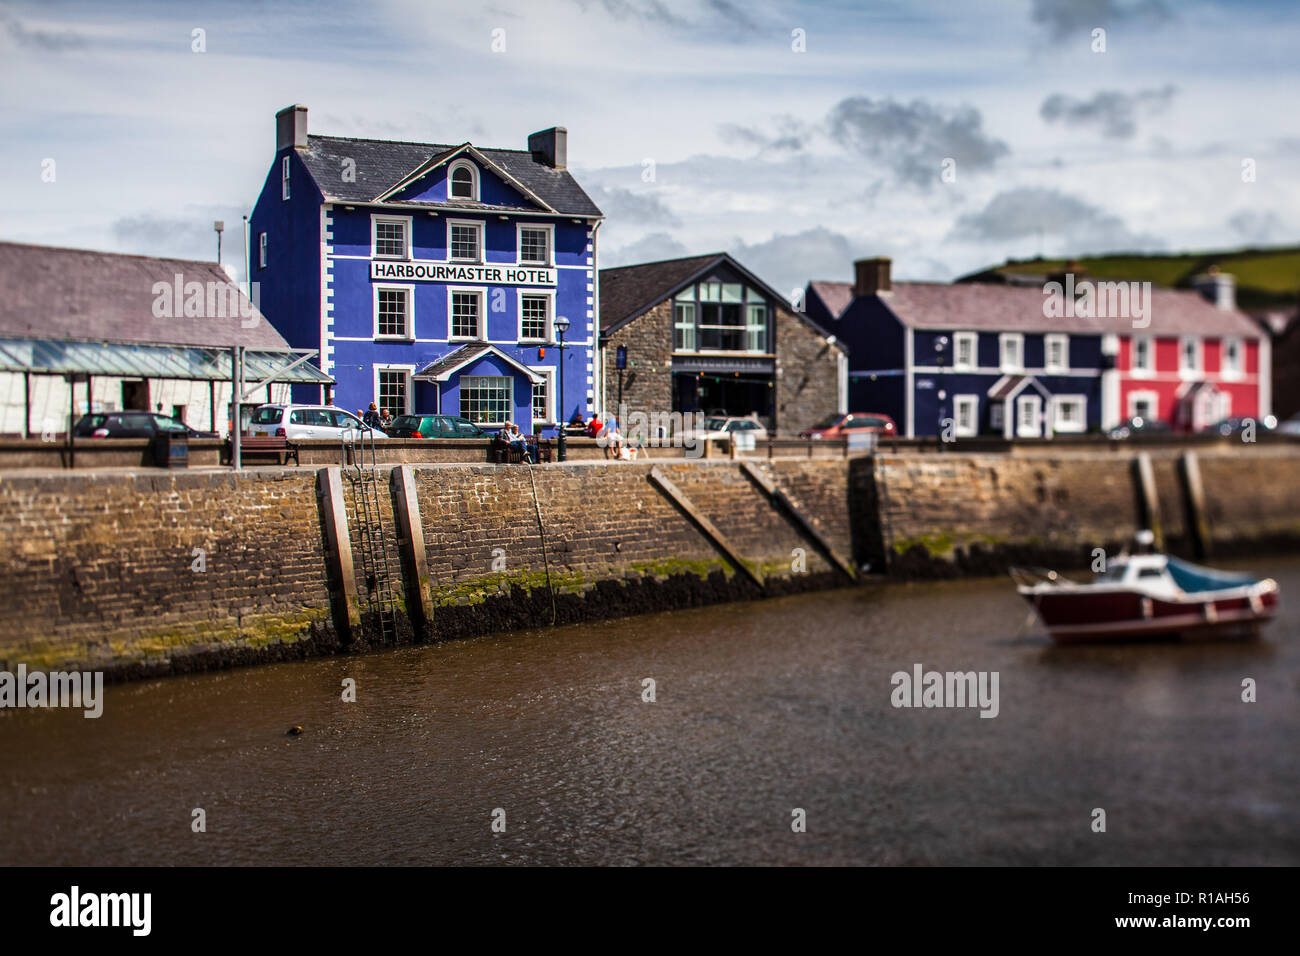 Harbourmaster Hotel Aberaeron - the Harbourmaster Hotel on the quayside in the Mid Wales seaside resort of Aberaeron. Note Tilt Shift lens used. - Stock Image